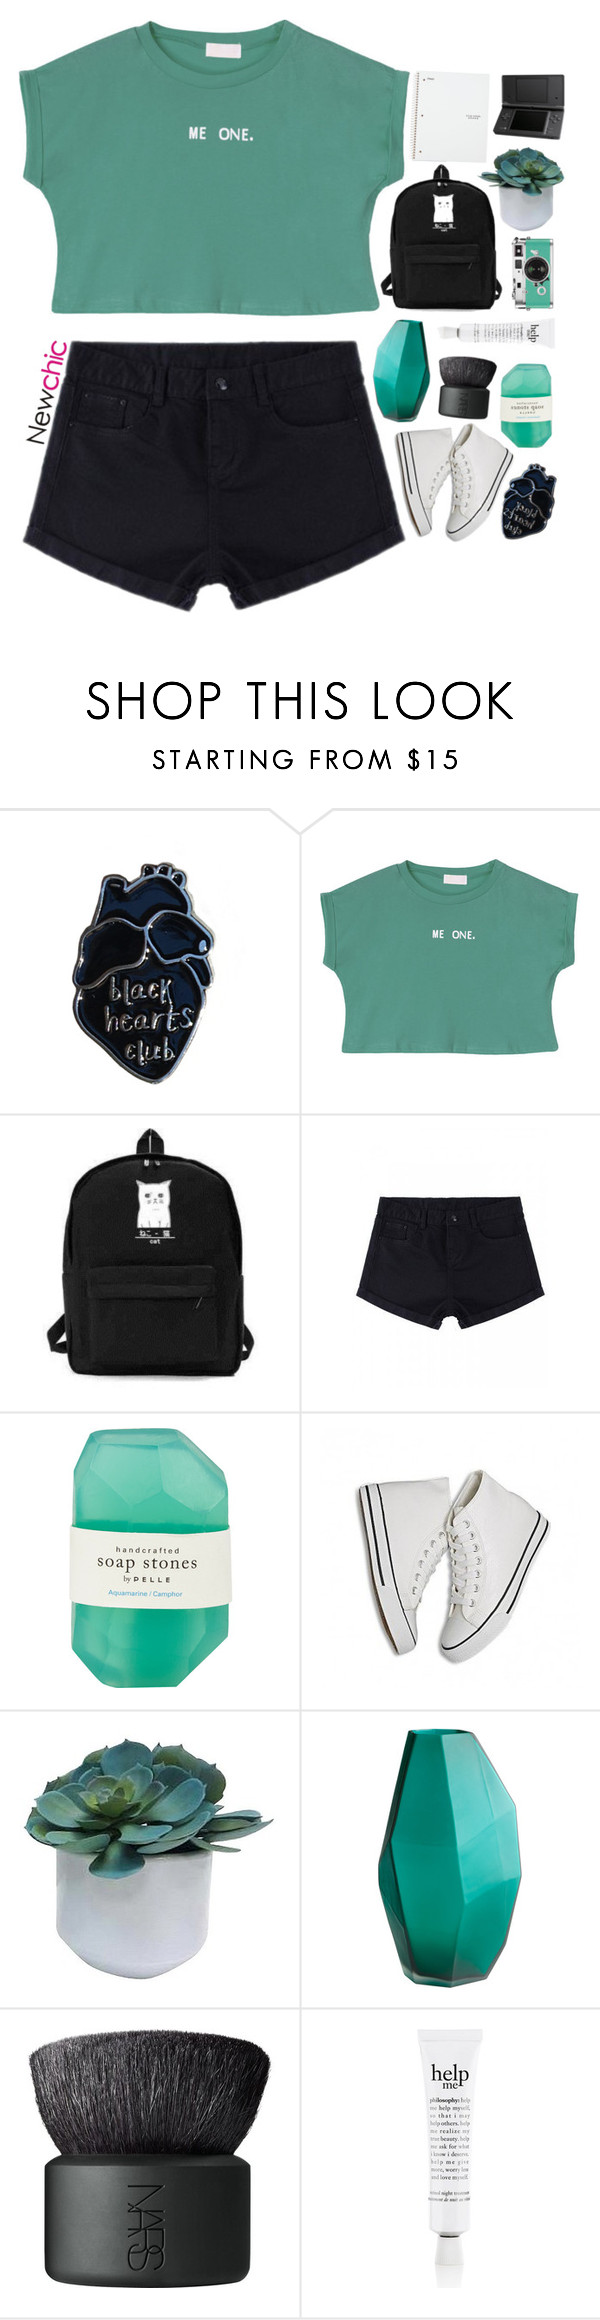 """""""NewChic 14"""" by blonde-scorpio-xo ❤ liked on Polyvore featuring Pelle, Threshold, NARS Cosmetics and philosophy"""